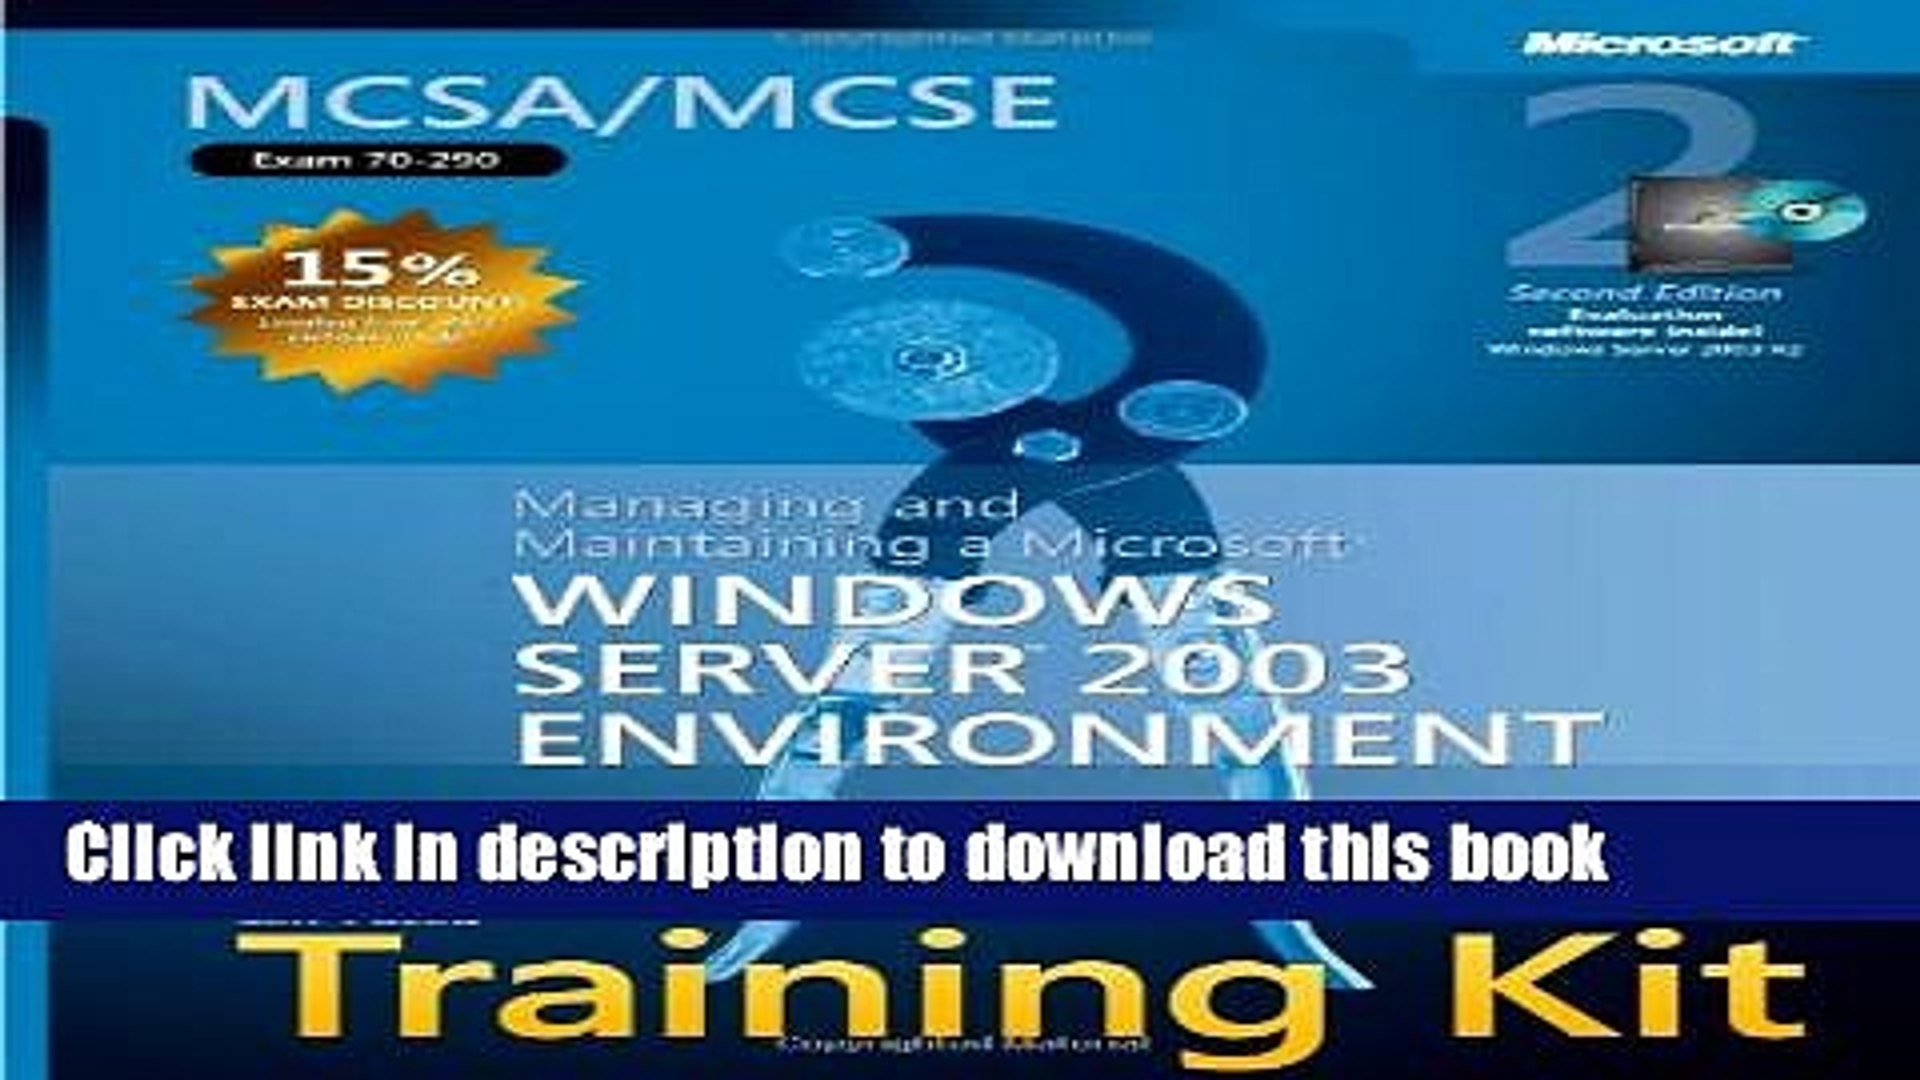 [Download] MCSA/MCSE Self-Paced Training Kit (Exam 70-290): Managing   Maintaining a Windows